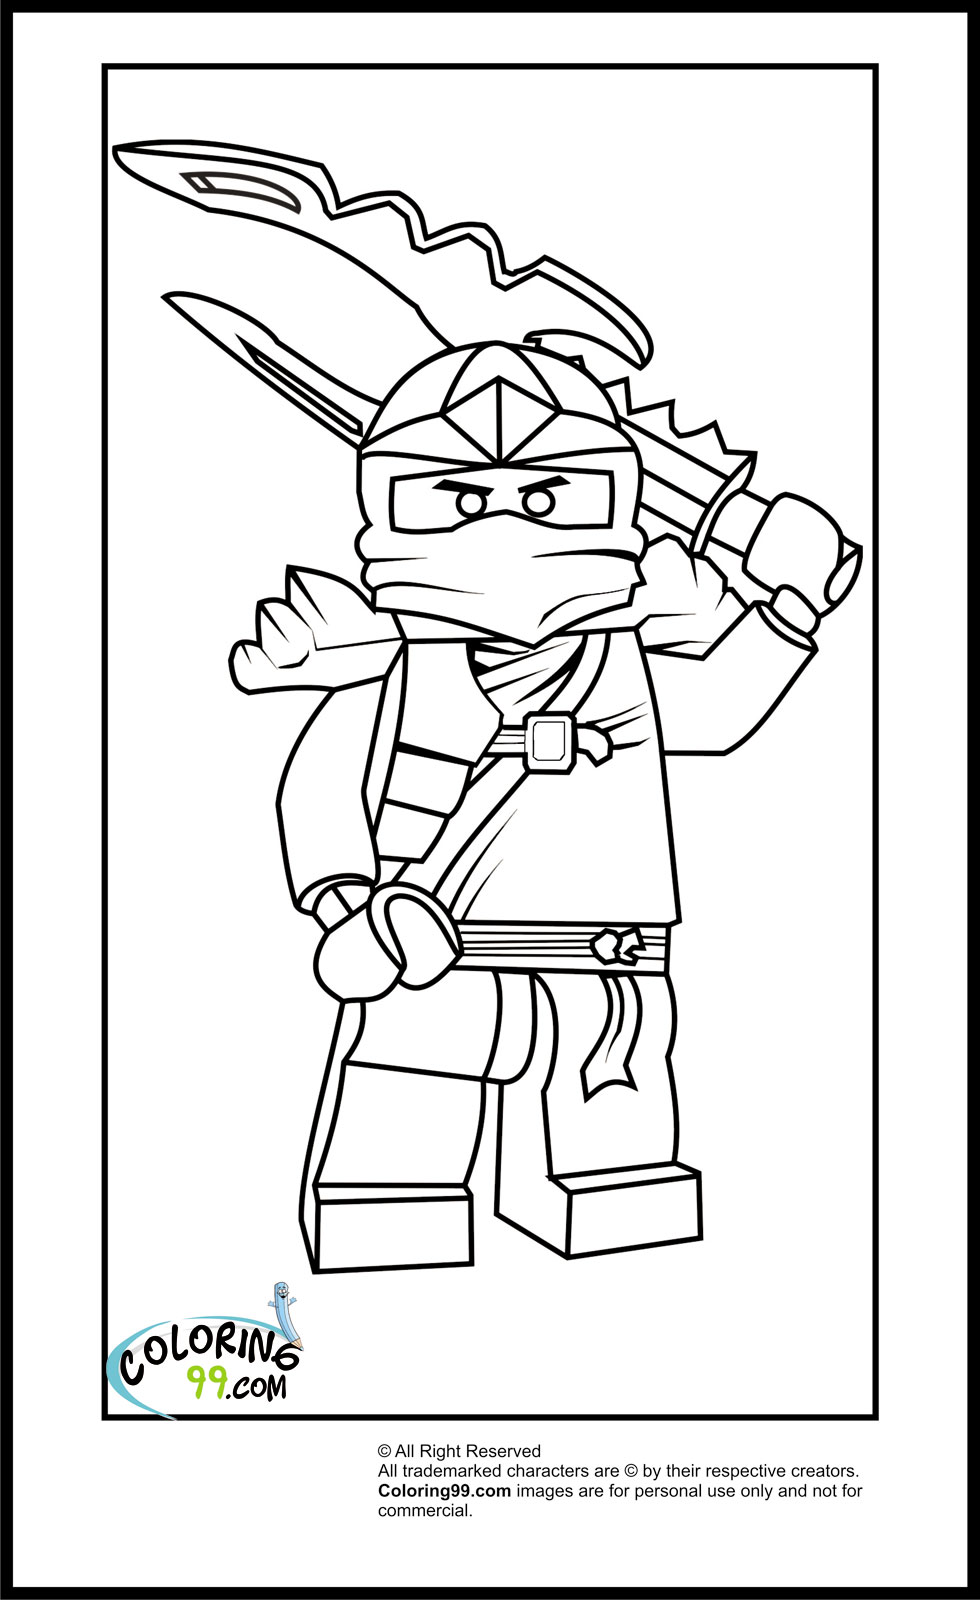 Lego Ninjago Coloring Pages - Free Printable Pictures ...